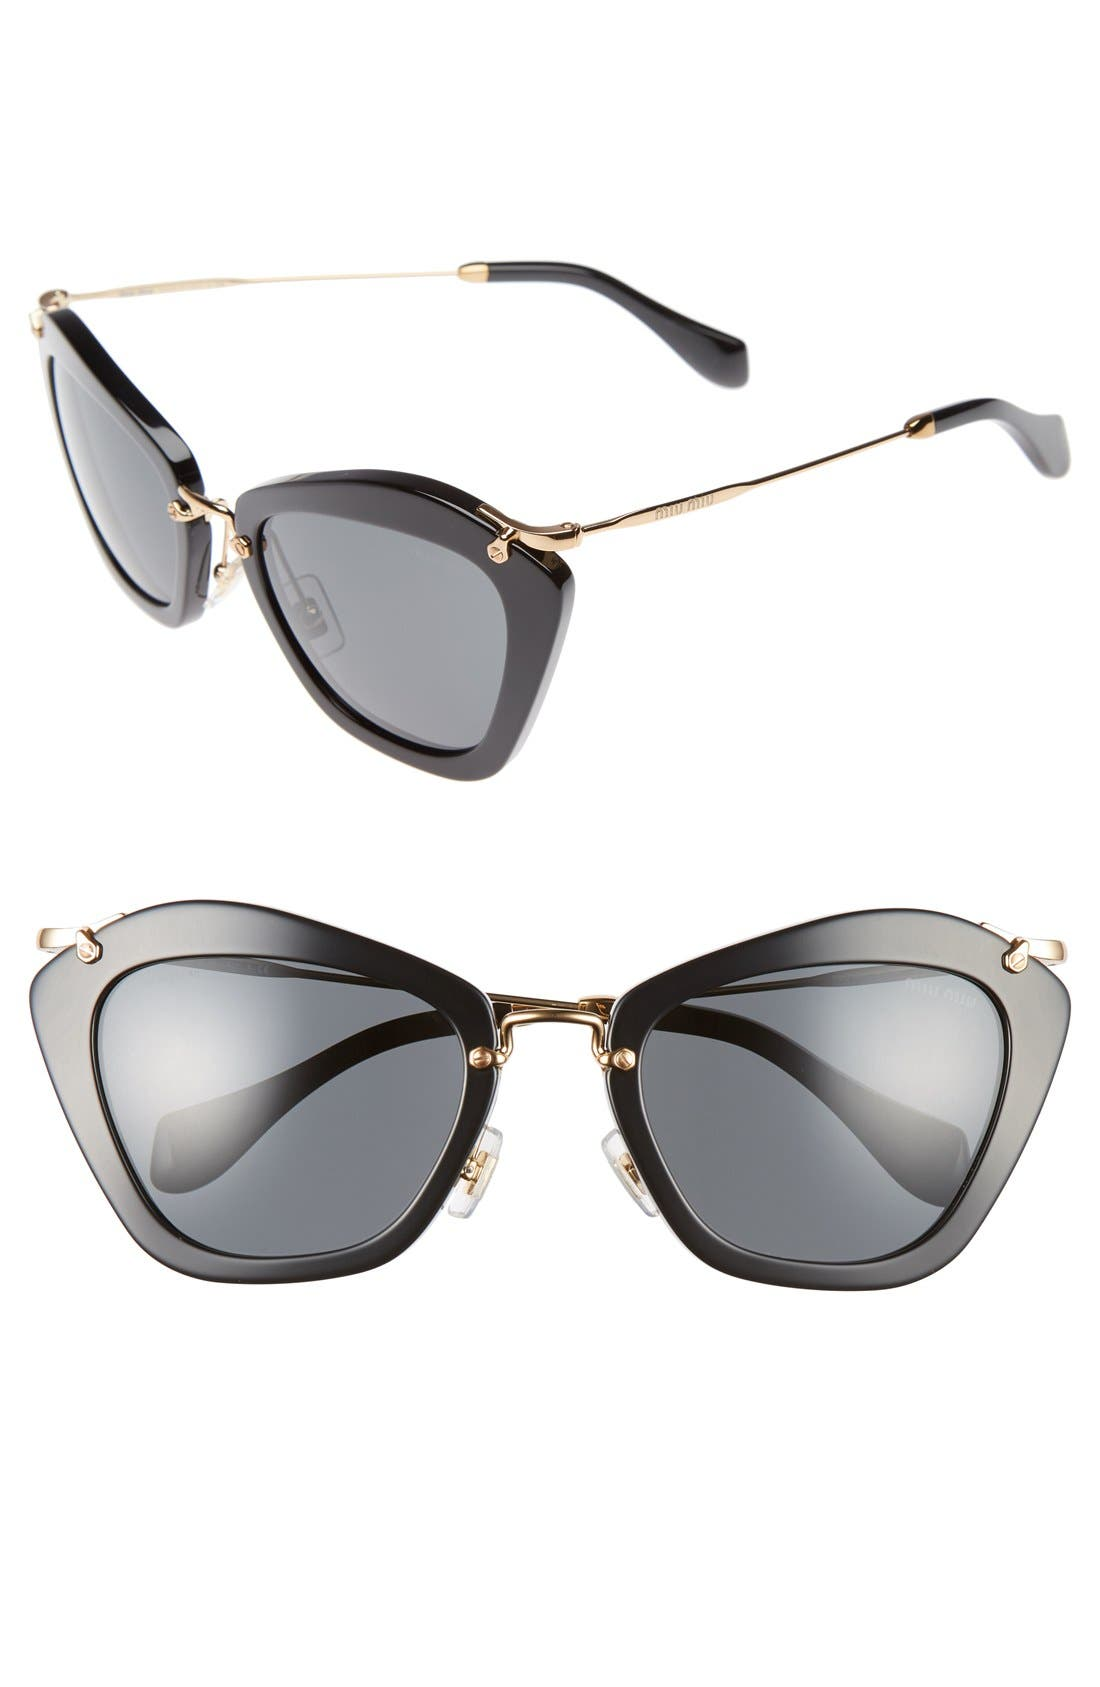 Noir 55mm Cat Eye Sunglasses,                         Main,                         color,